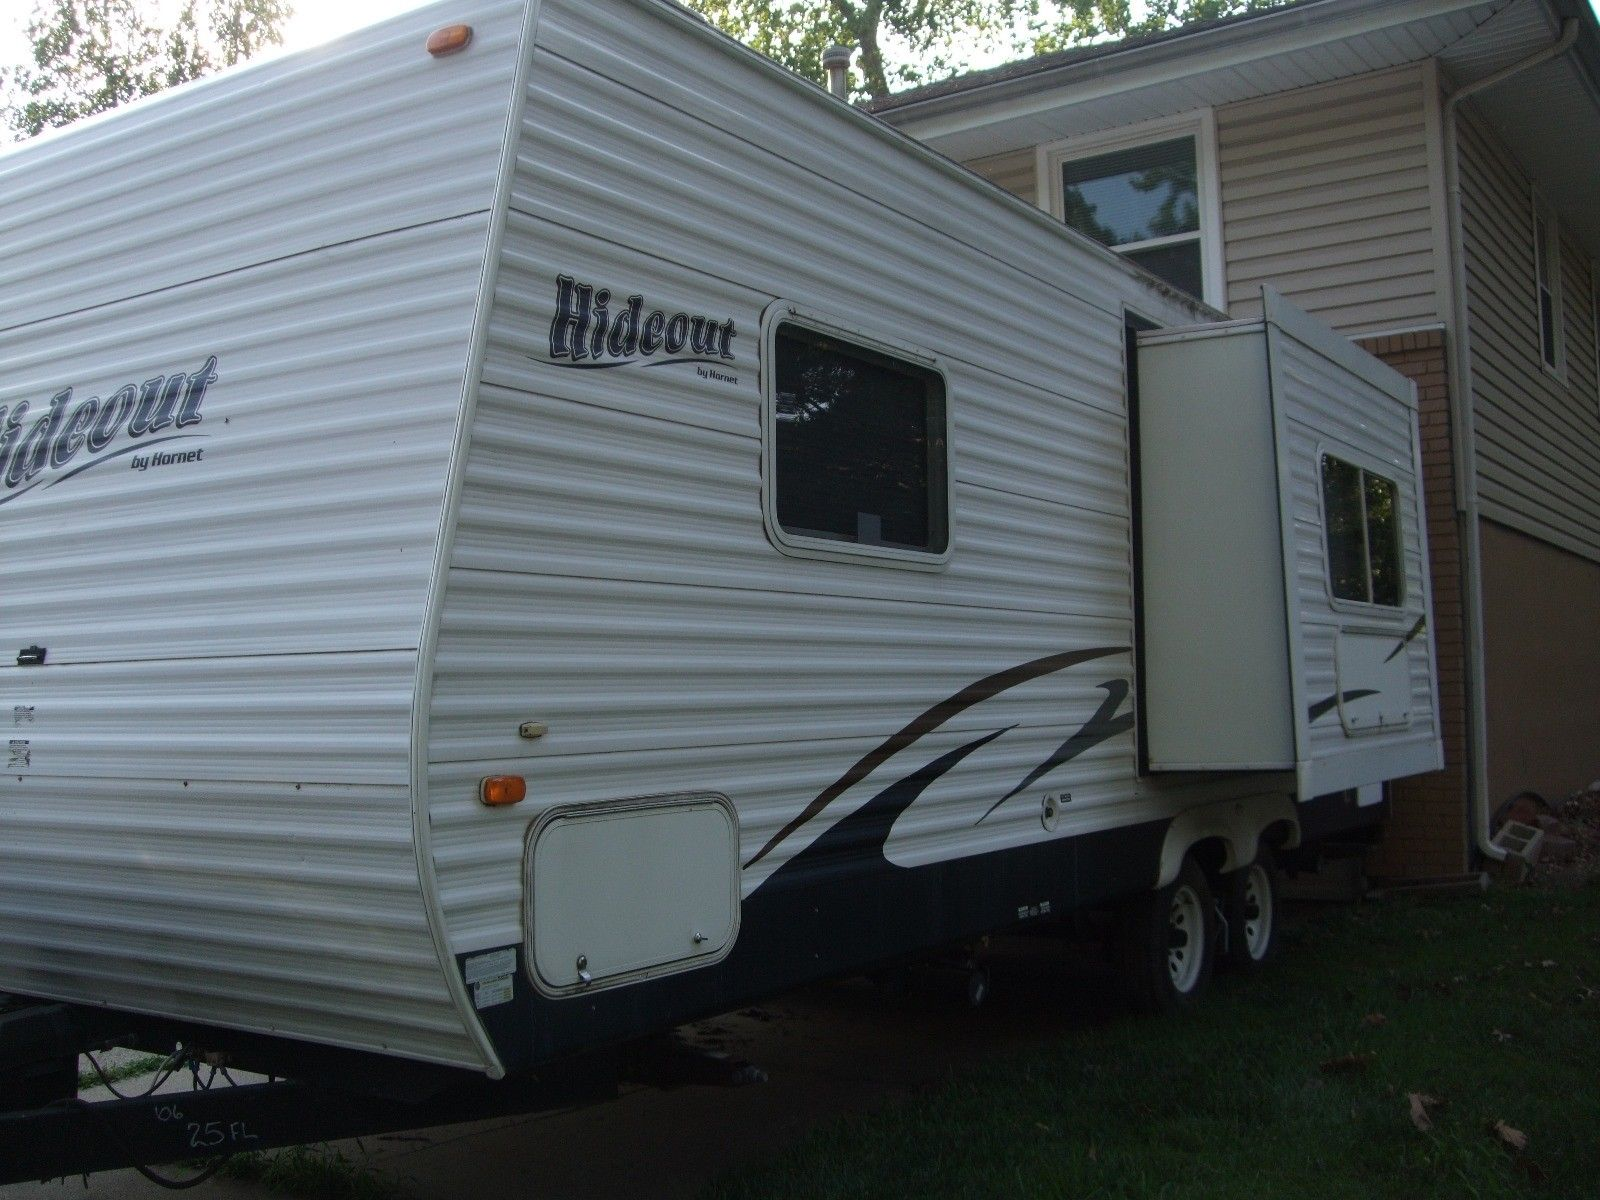 Gently used 2007 Keystone Hideout camper for sale